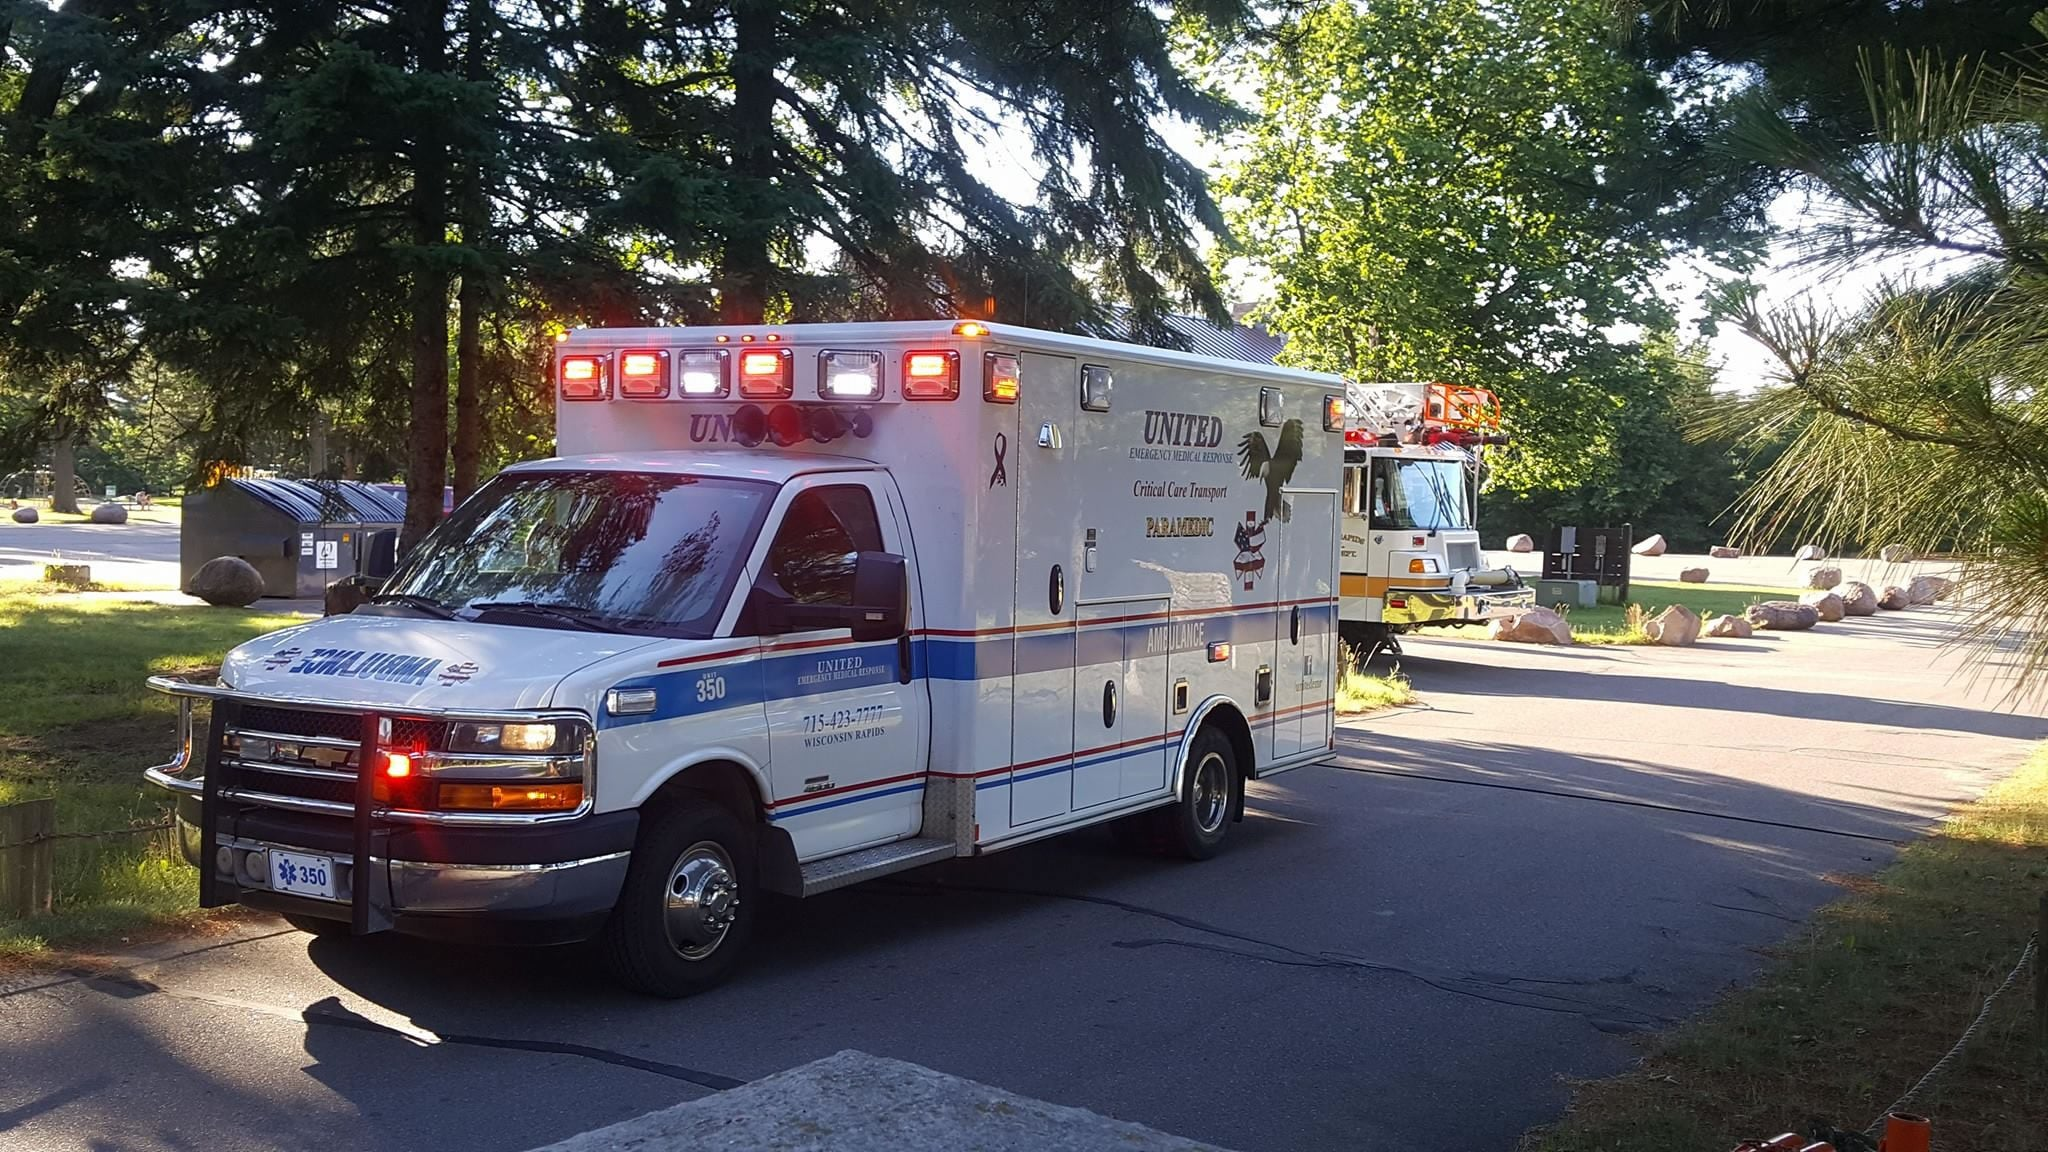 Ambulance in Neighborhood